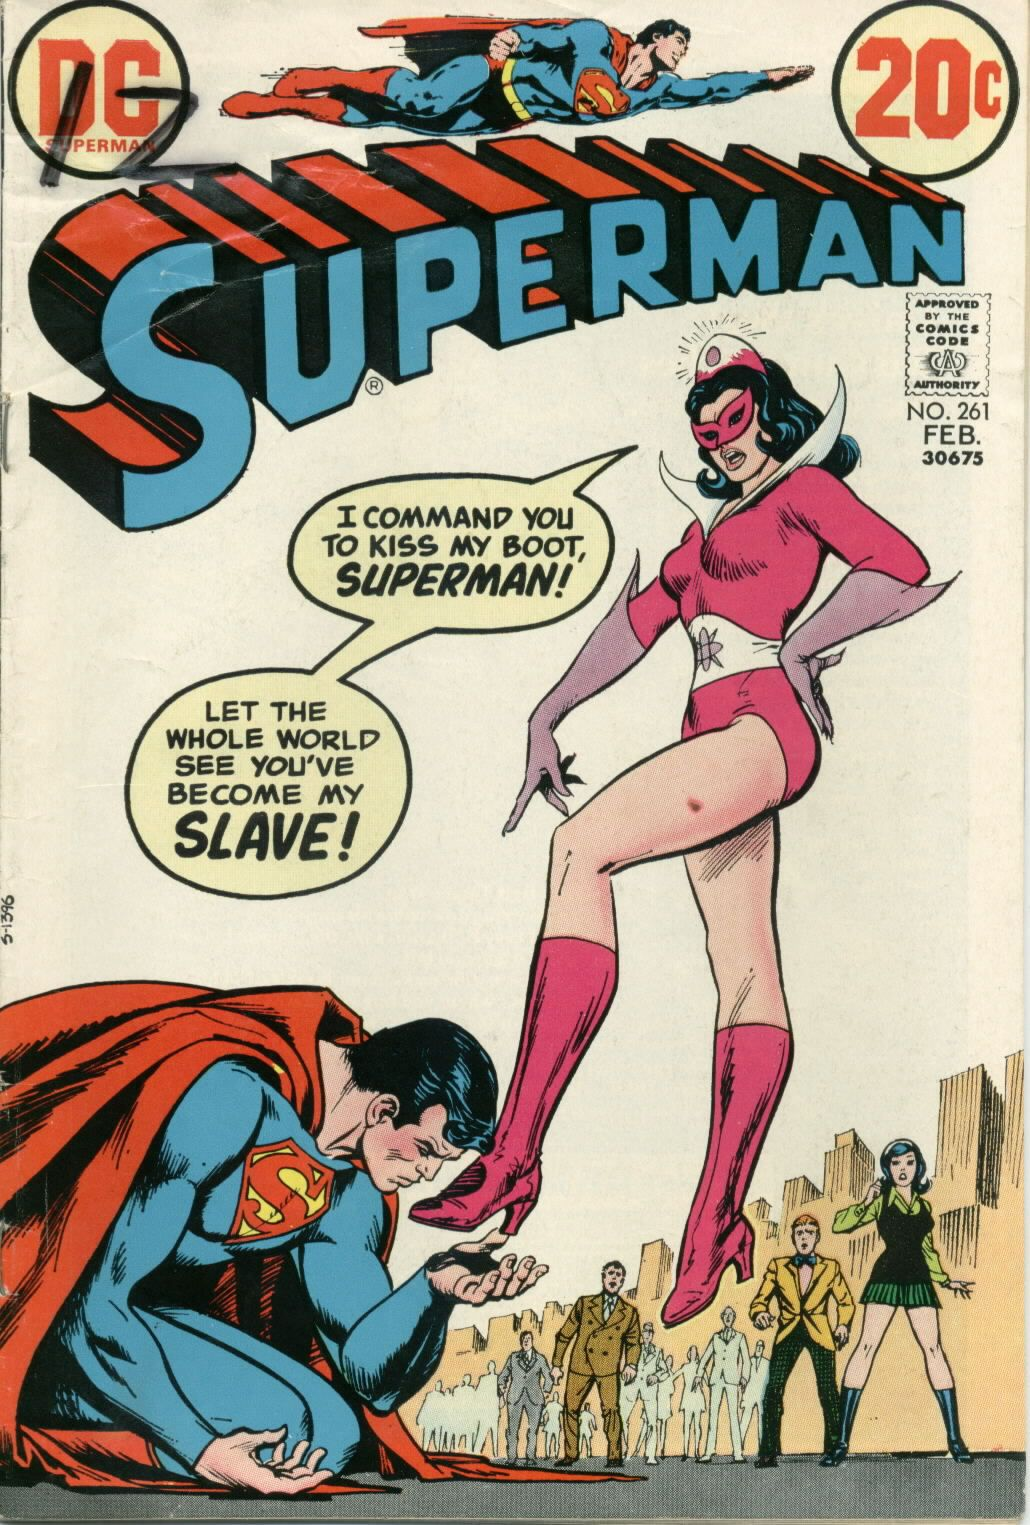 Female superheroes bondage